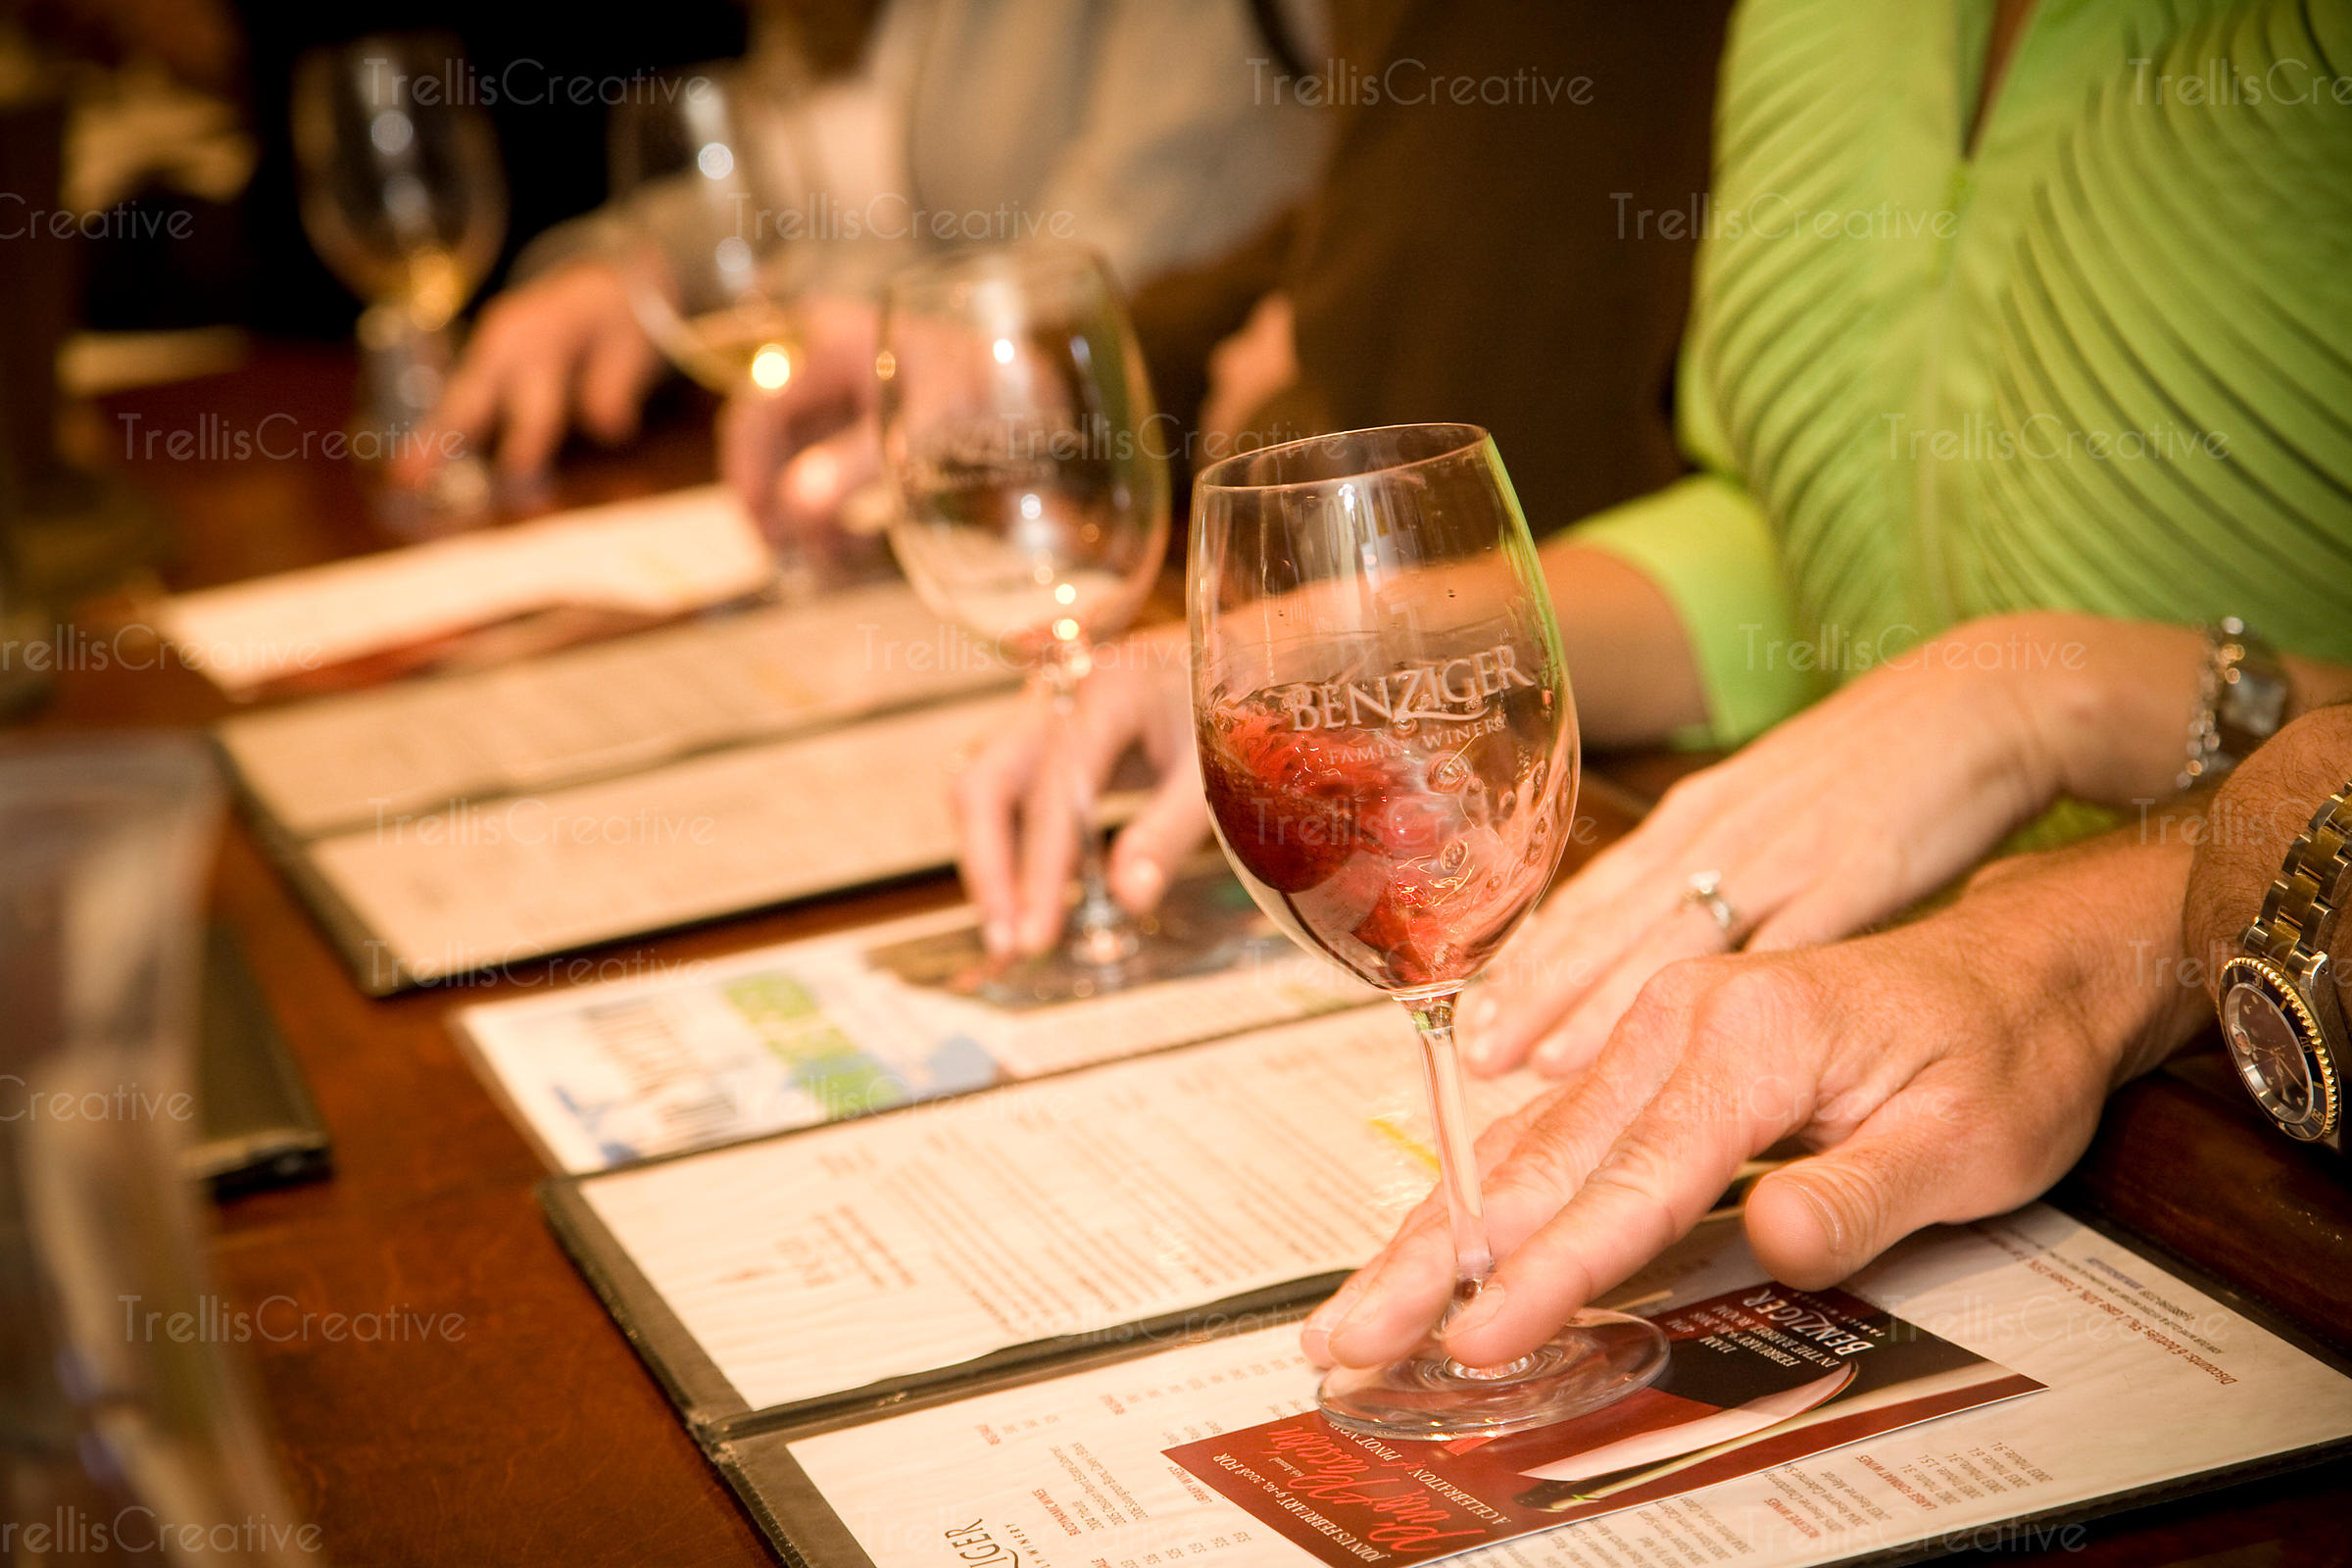 Customers swirling wine in glasses in a winery tasting room